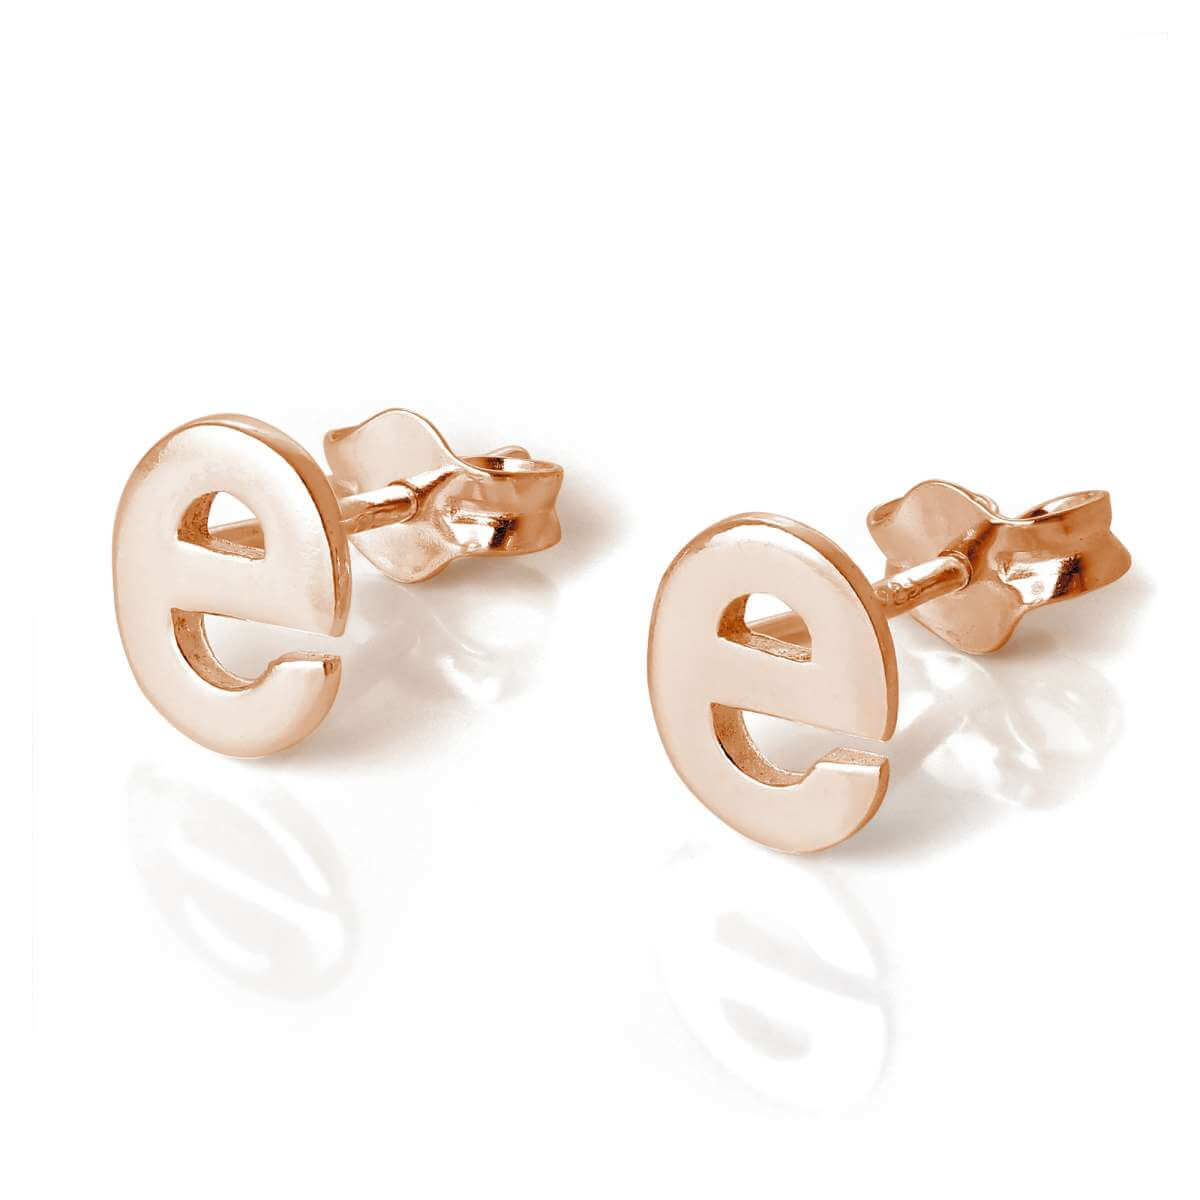 Rose Gold Plated Sterling Silver Letter E Stud Earrings